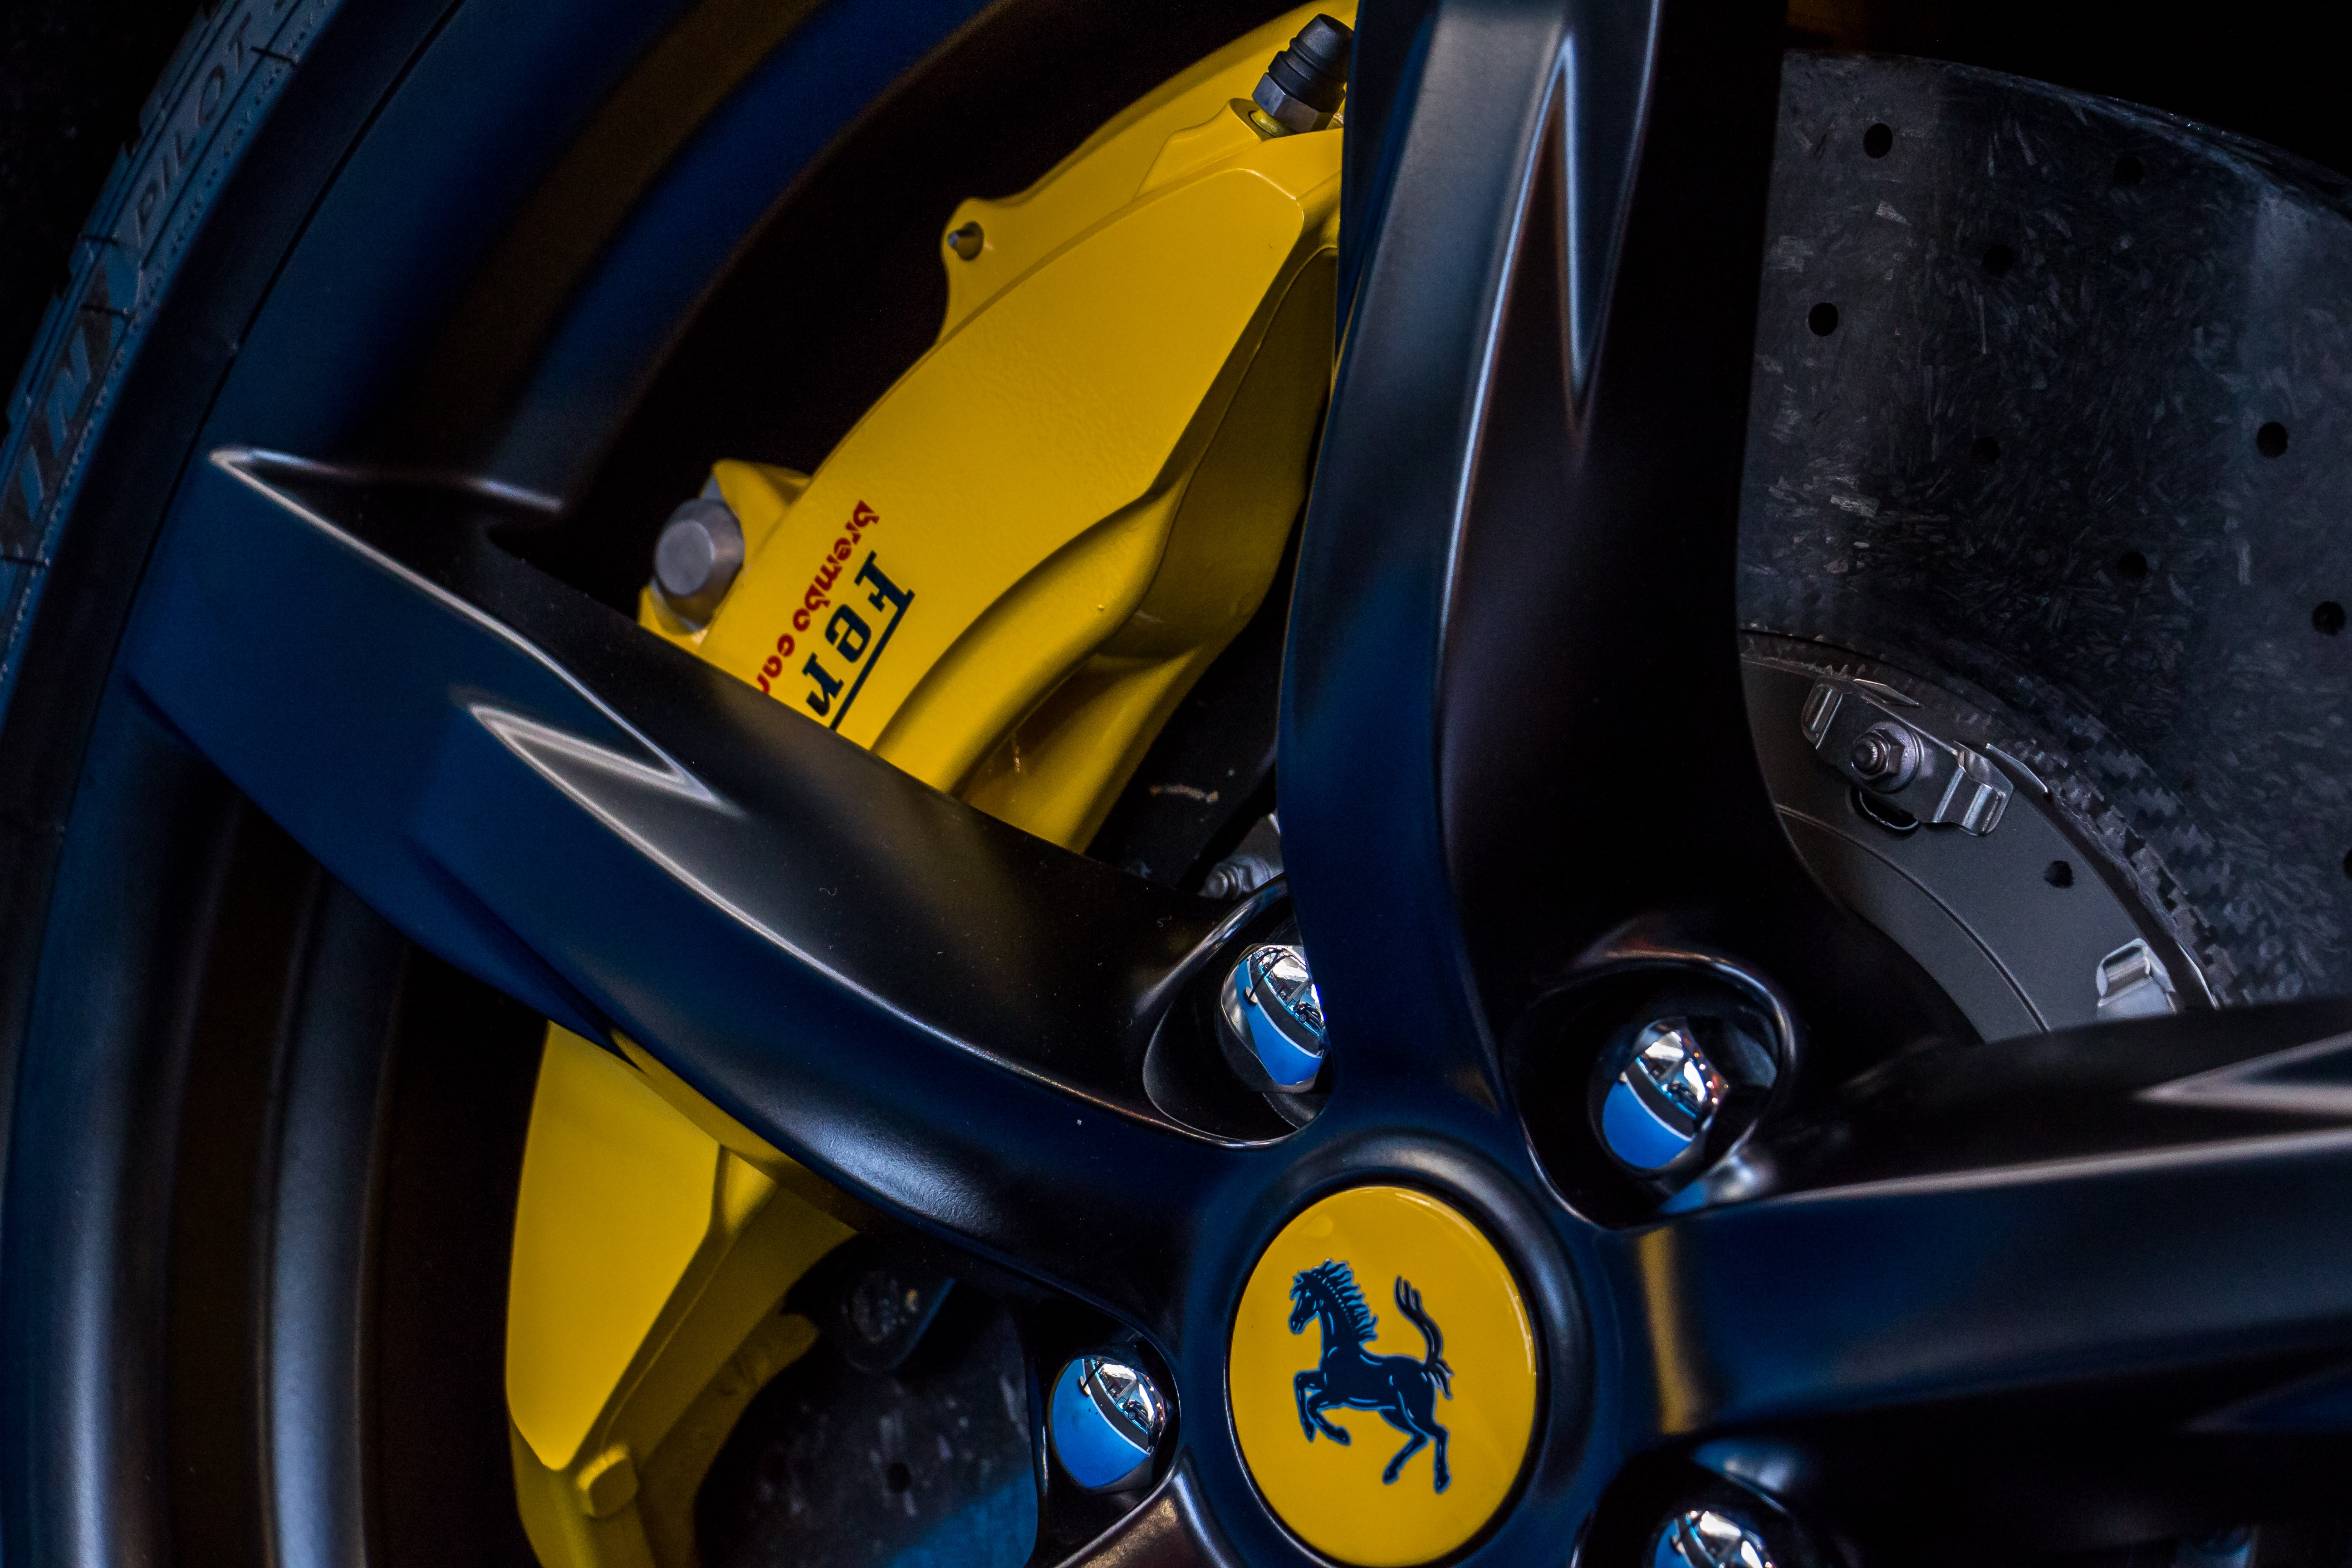 closeup photo of vehicle Ferrari wheel and tire